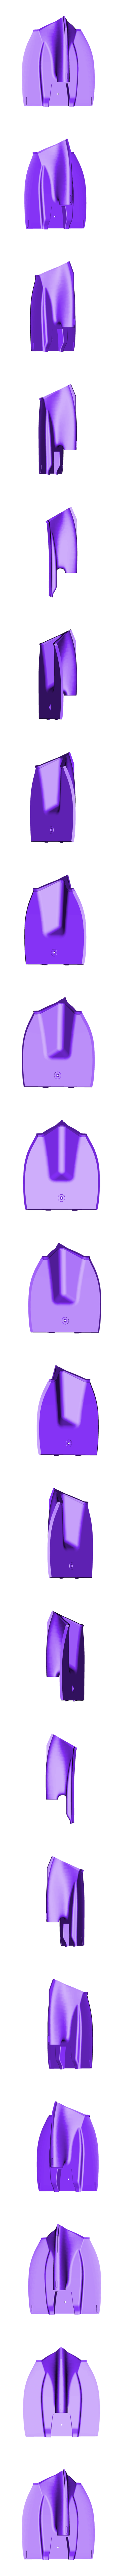 OpenRC_F1_250scaled_-_Component5-1.STL Download free STL file OpenRC F1 250% scaled • Template to 3D print, colorFabb